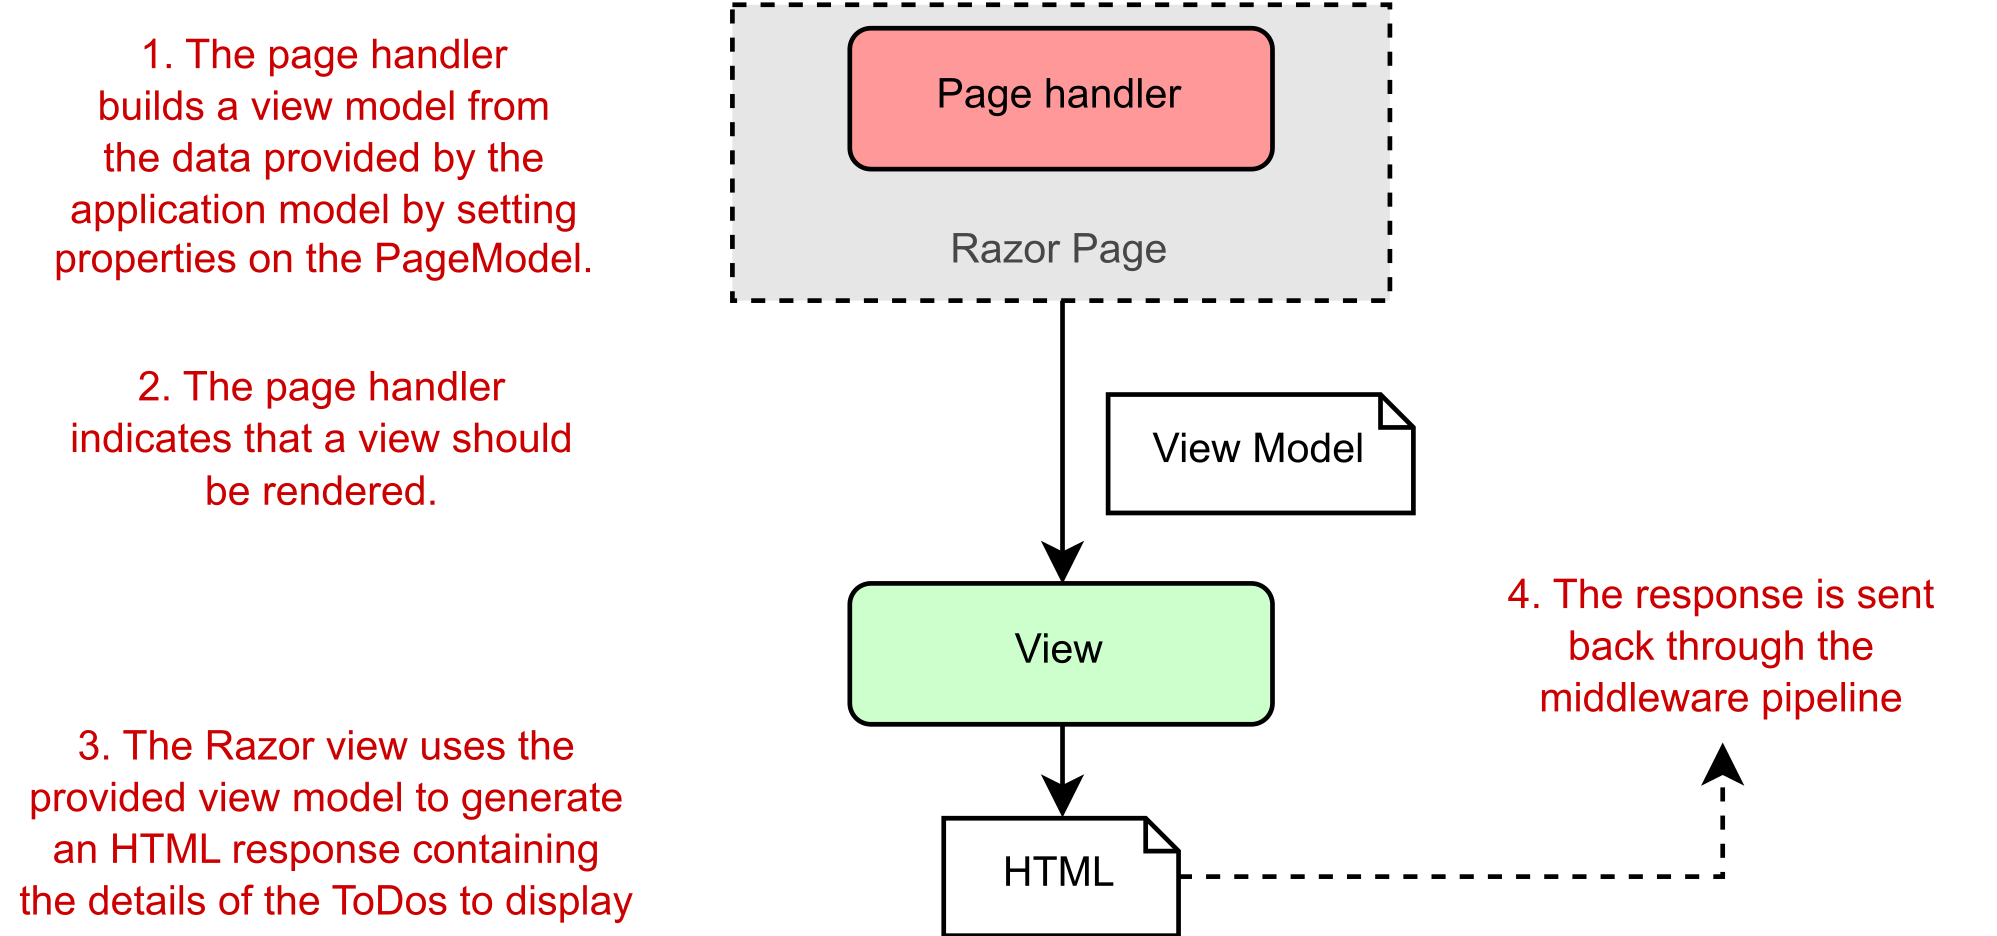 Passing the PageModel to a Razor View, which uses it to generate HTML